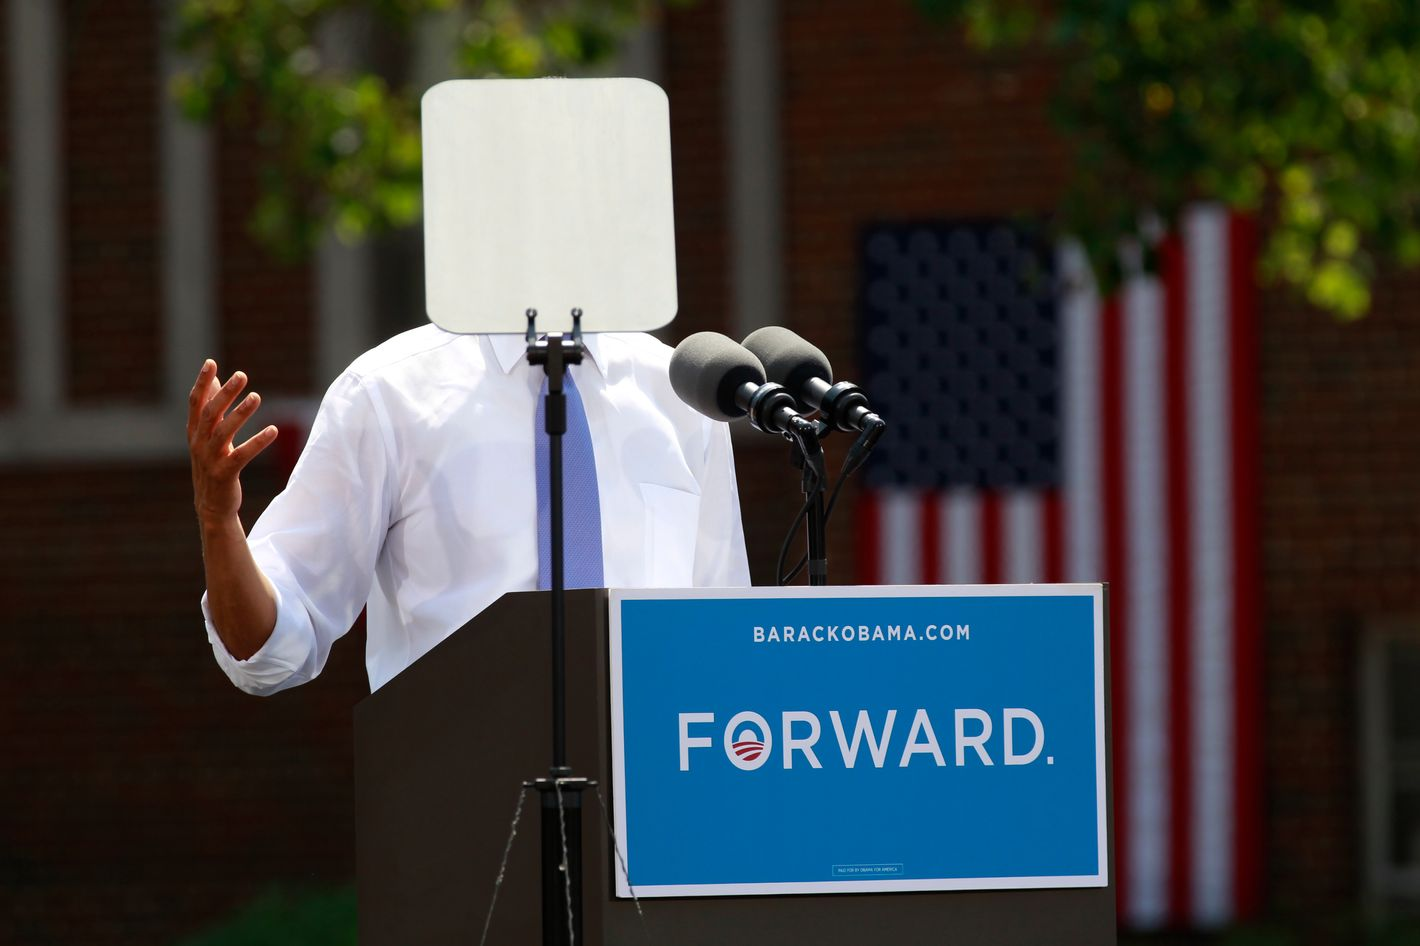 A teleprompter obscures U.S. President Barack Obama as he speaks during a campaign event at Capital University in Columbus, Ohio August 21, 2012. Obama is on a two-day campaign trip to Ohio, Nevada and New York.